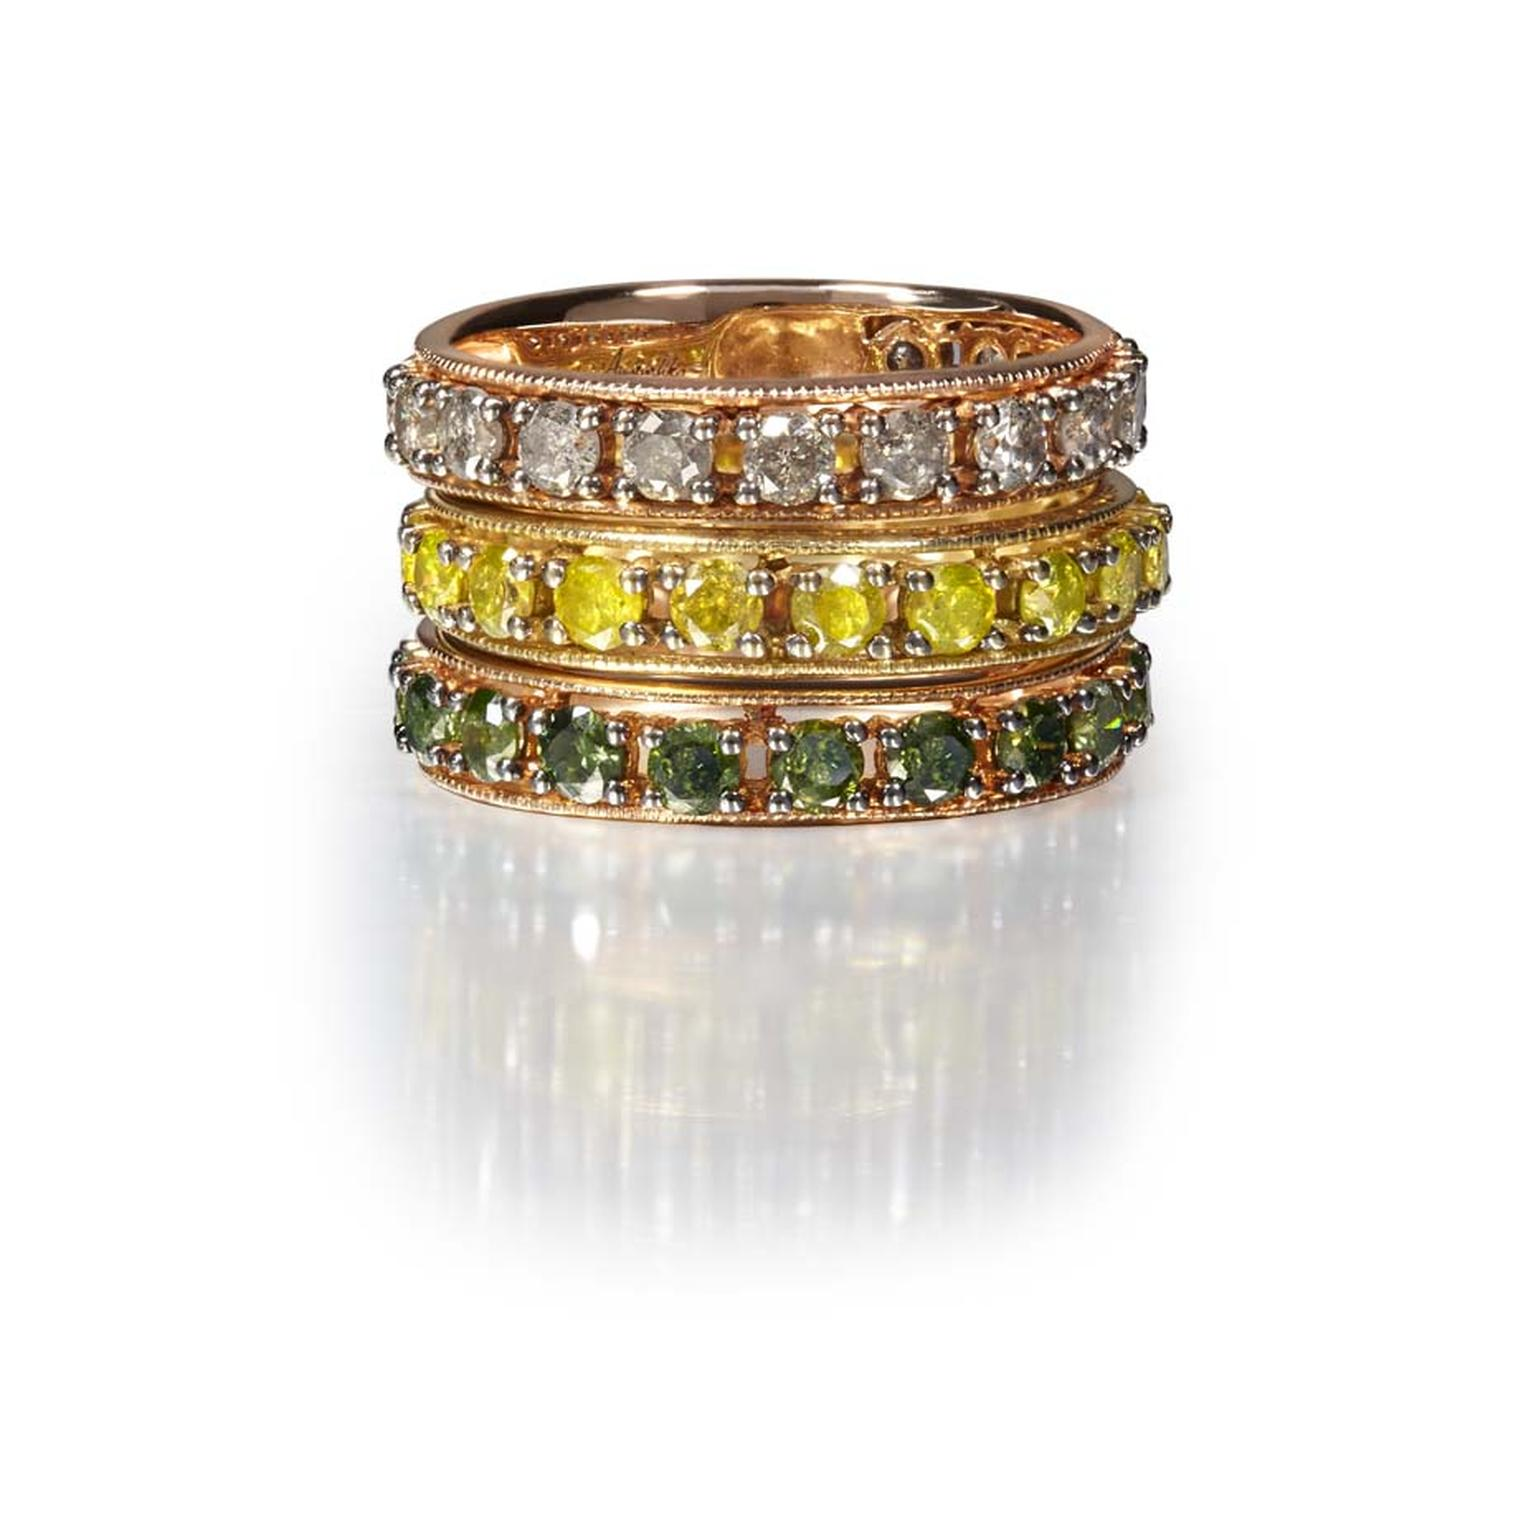 Annoushka stackable Dusty Diamond Eternity rings with white, yellow and green diamonds.